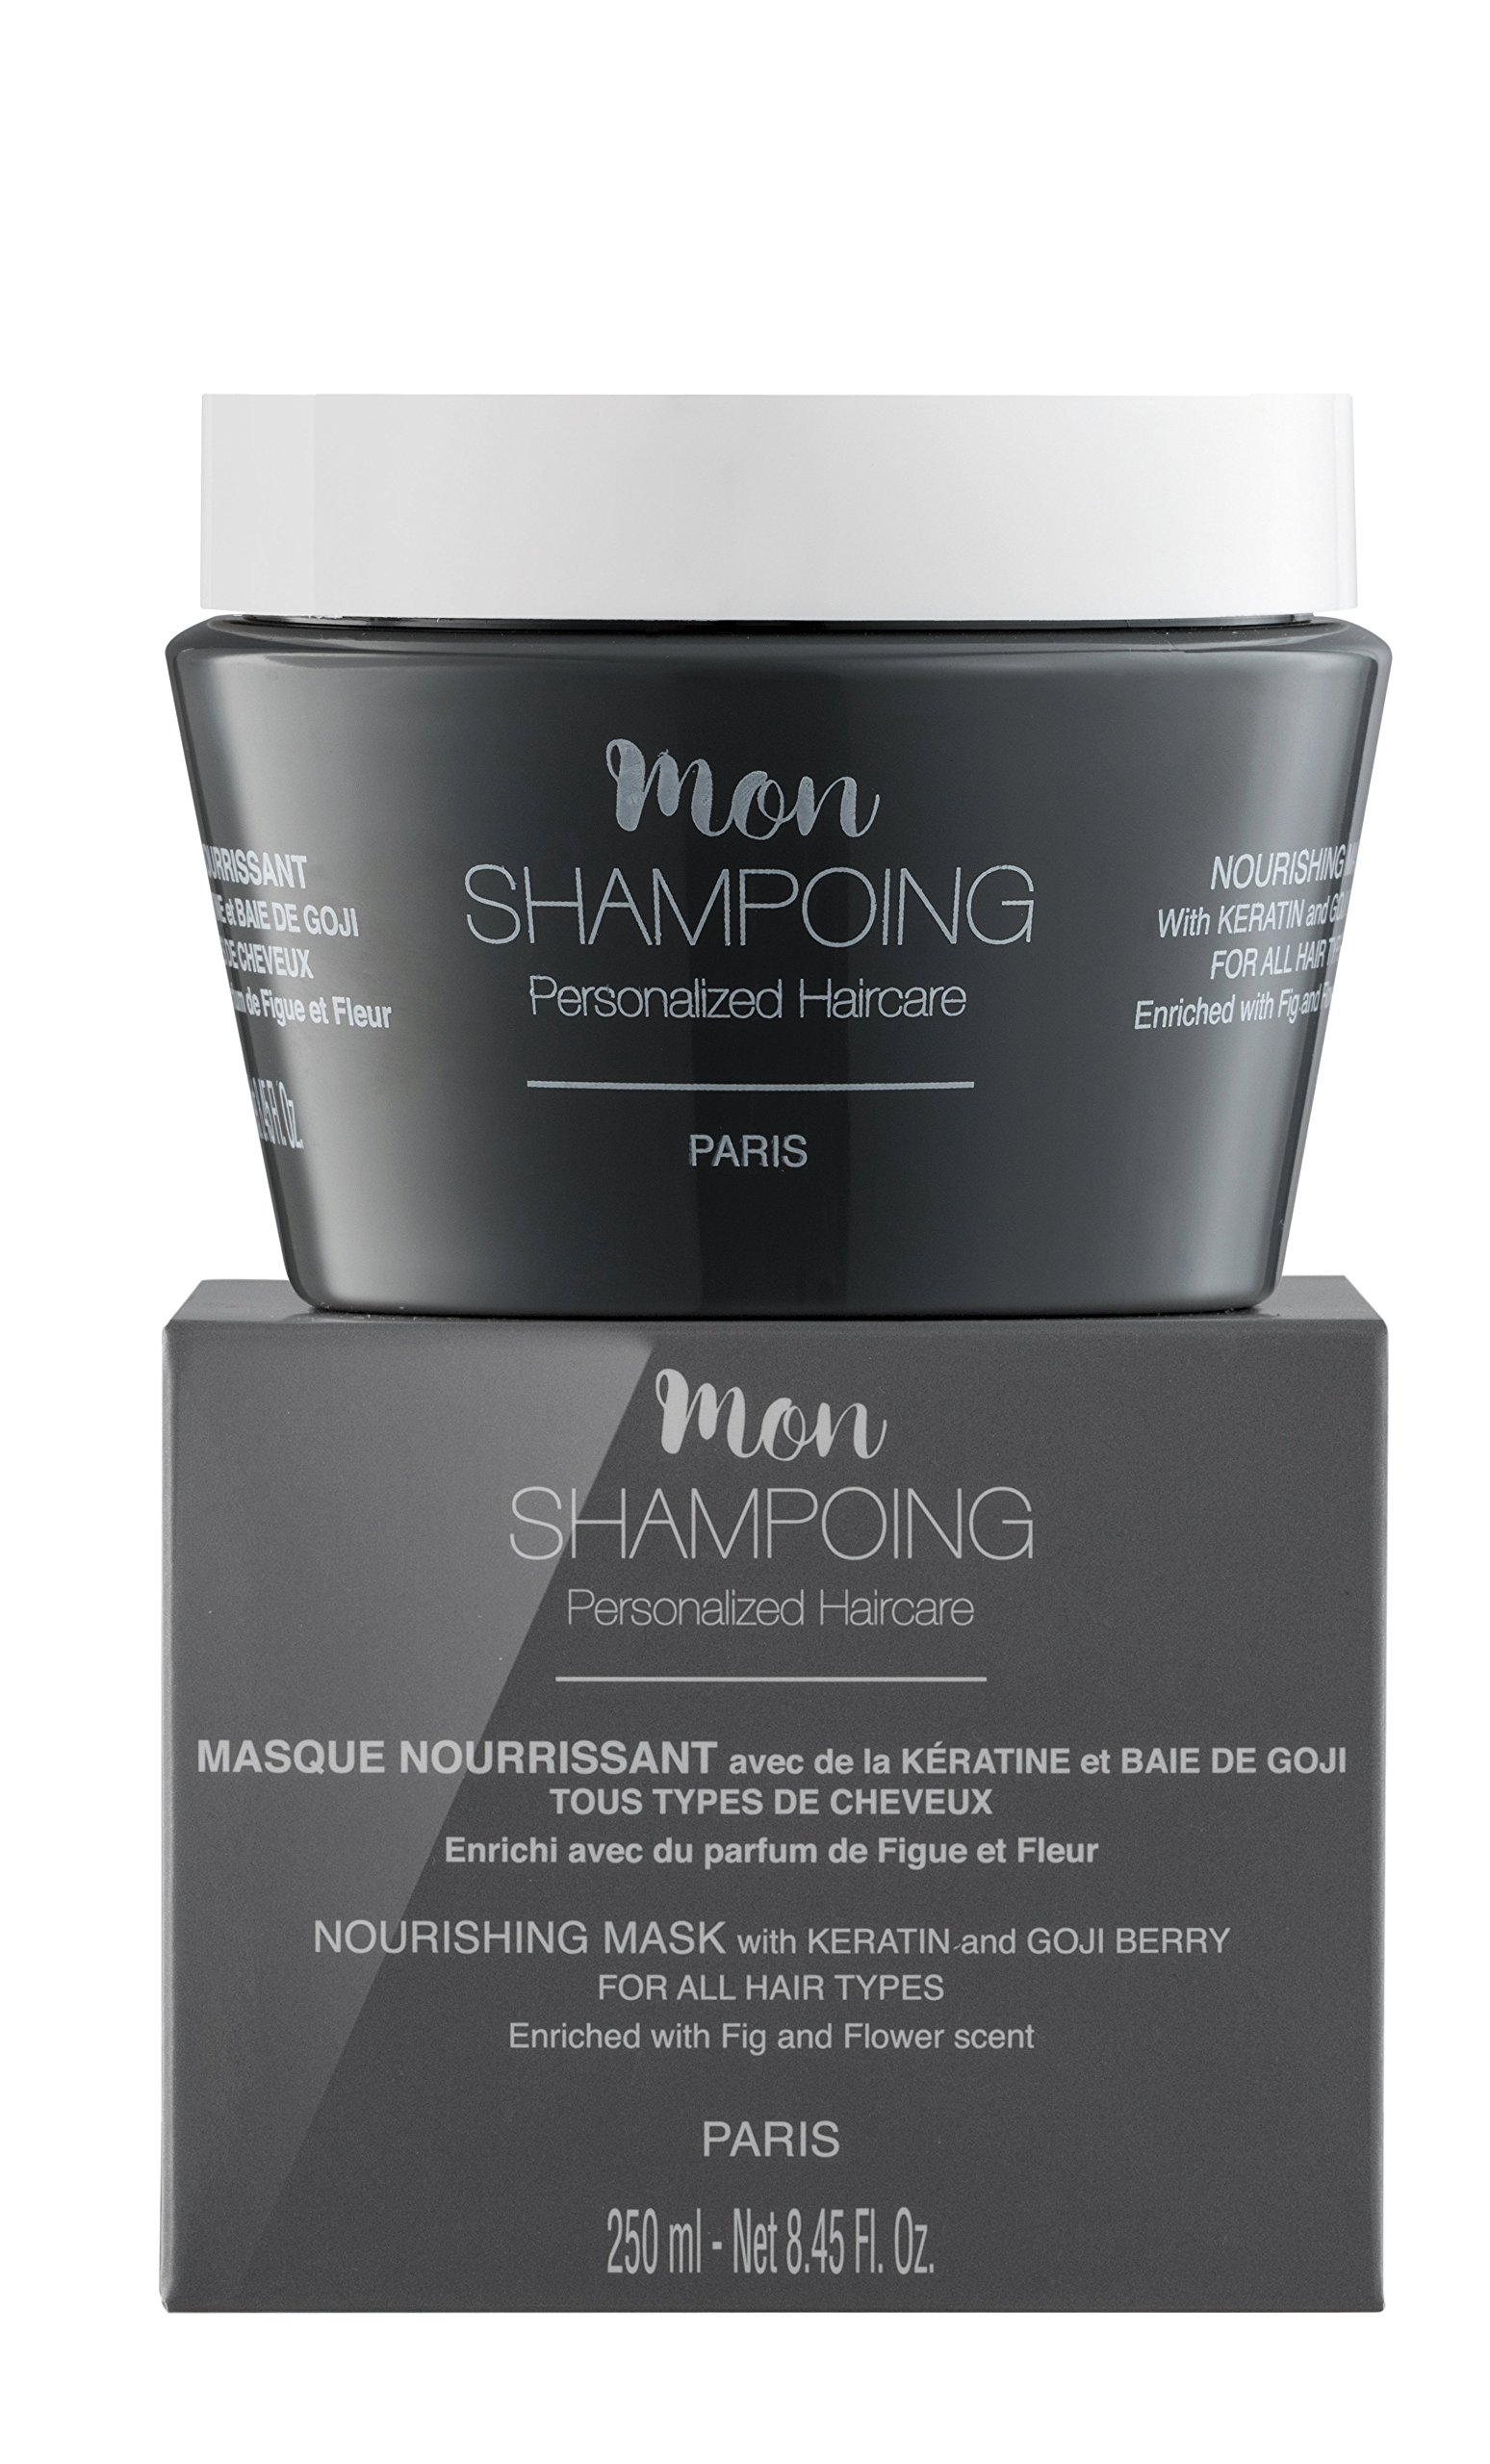 Mon Shampoing nourishing MASK with KERATIN and GOJI BERRY – ALL HAIR TYPES – 250 ml by Mon Shampoing (Image #1)